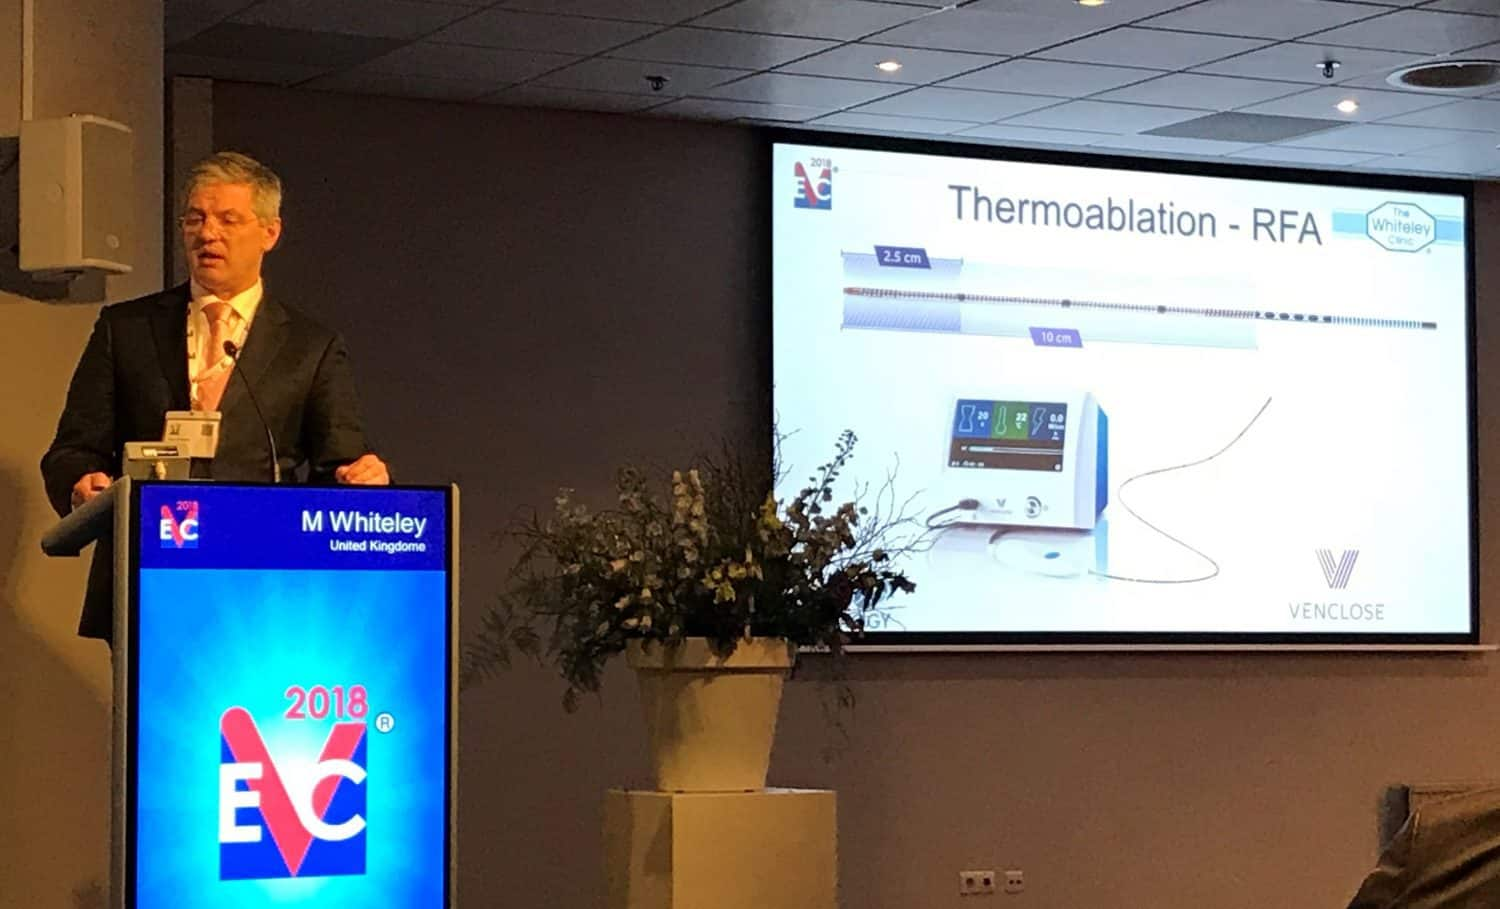 Prof Mark Whiteley lecturing on new treatments for varicose veins in 2018 at the EVC in Maastricht 2018 - Venclose - a new radiofrequency ablation device for treating varicose veins